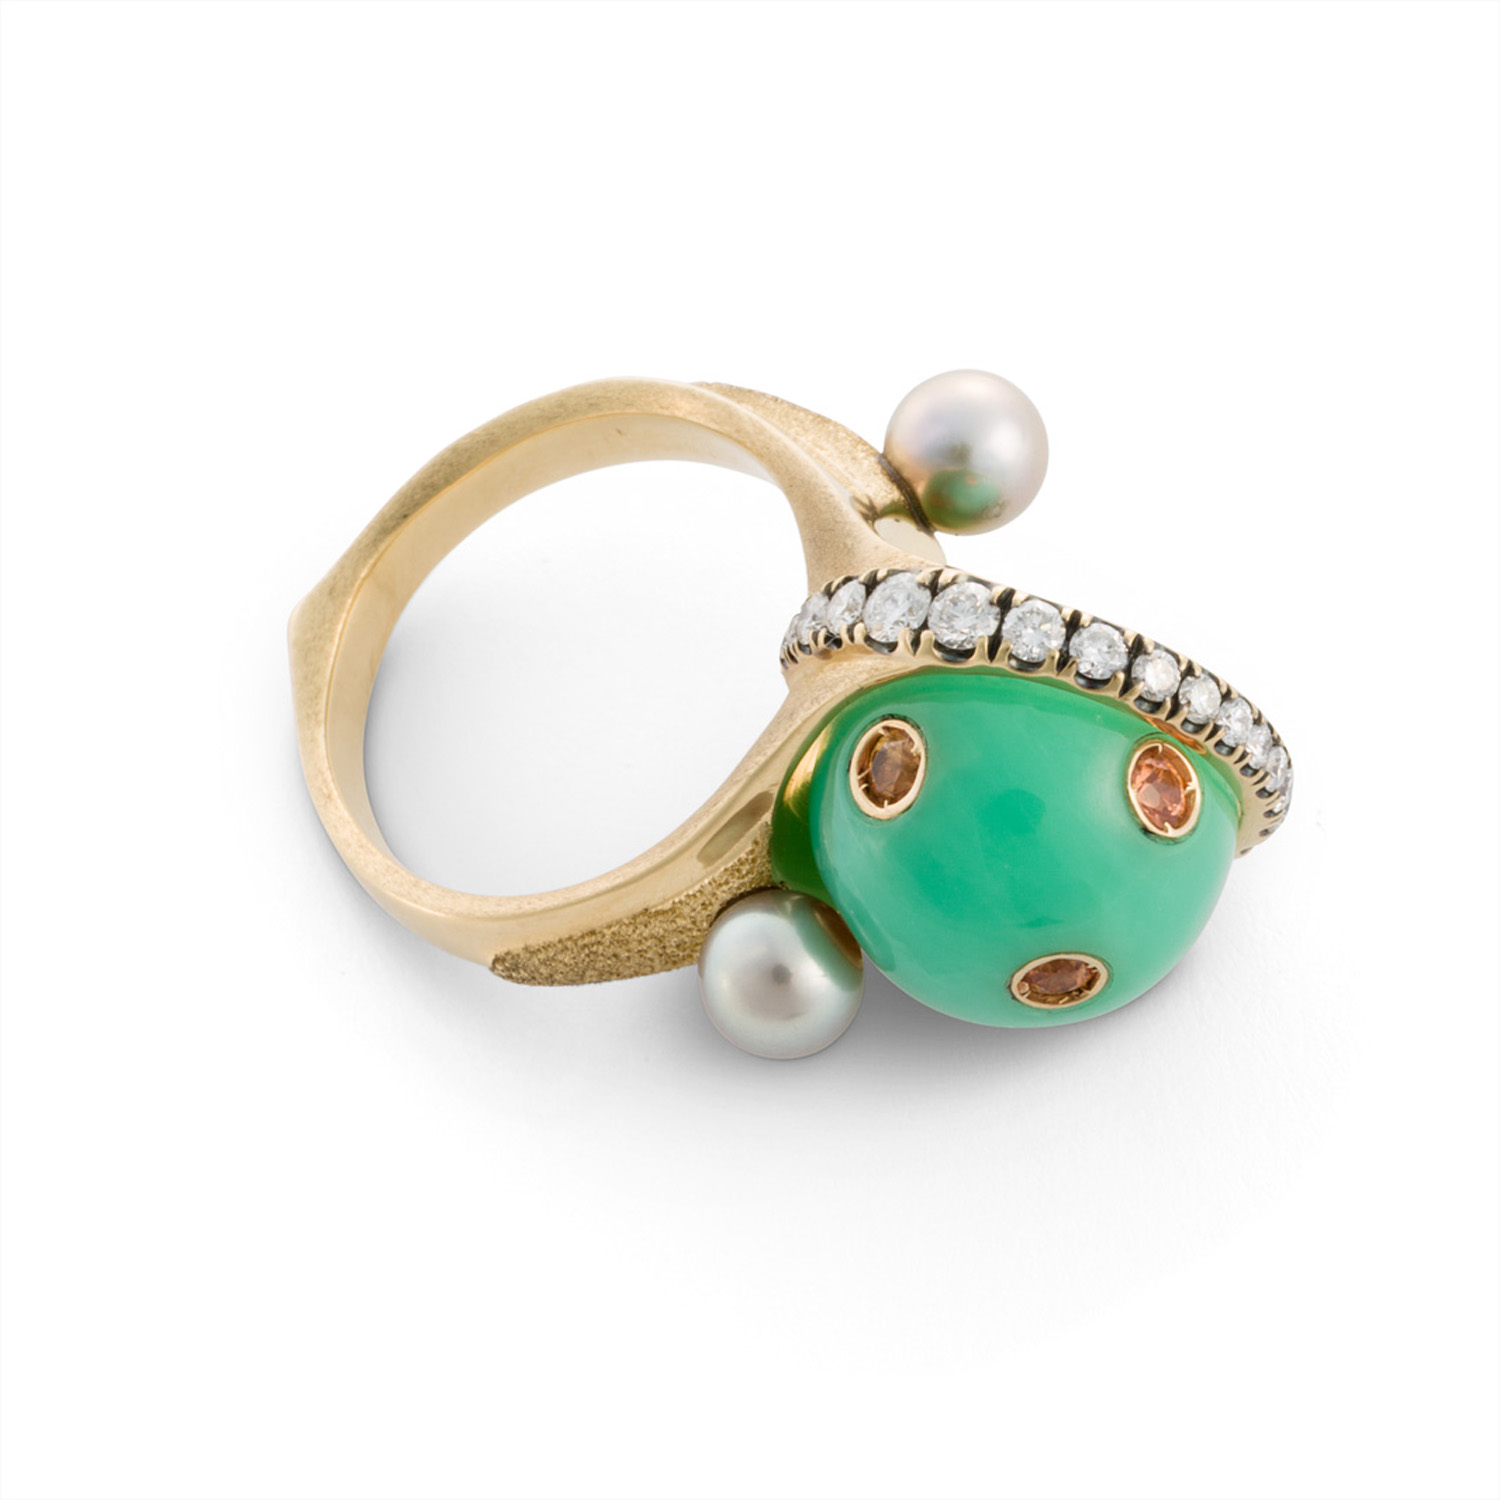 Moving Bead Ring